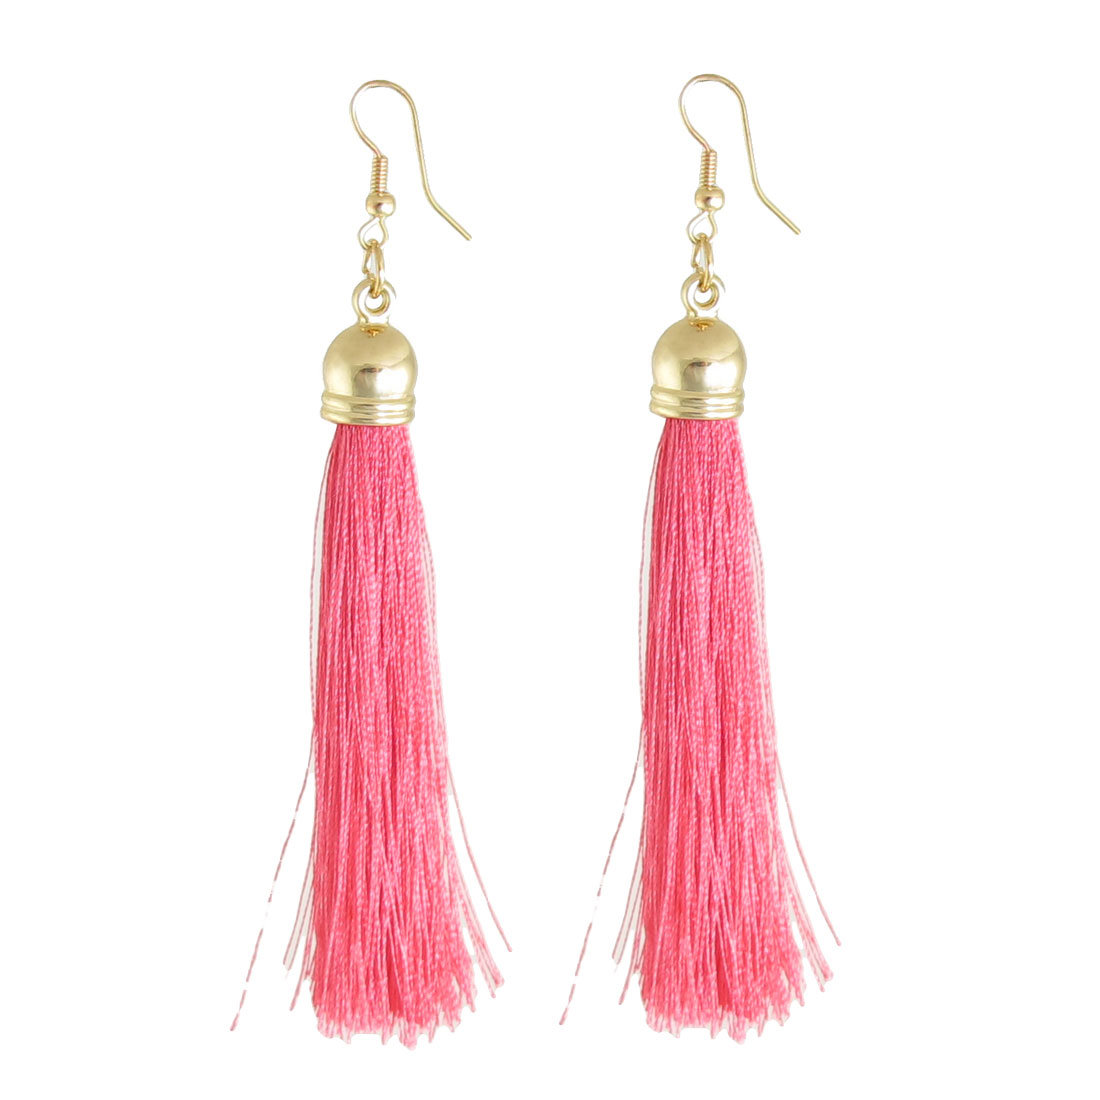 Pair Watermelon Red Nylon Tassel Dangle Fish Hook Earrings Jewelry for Women